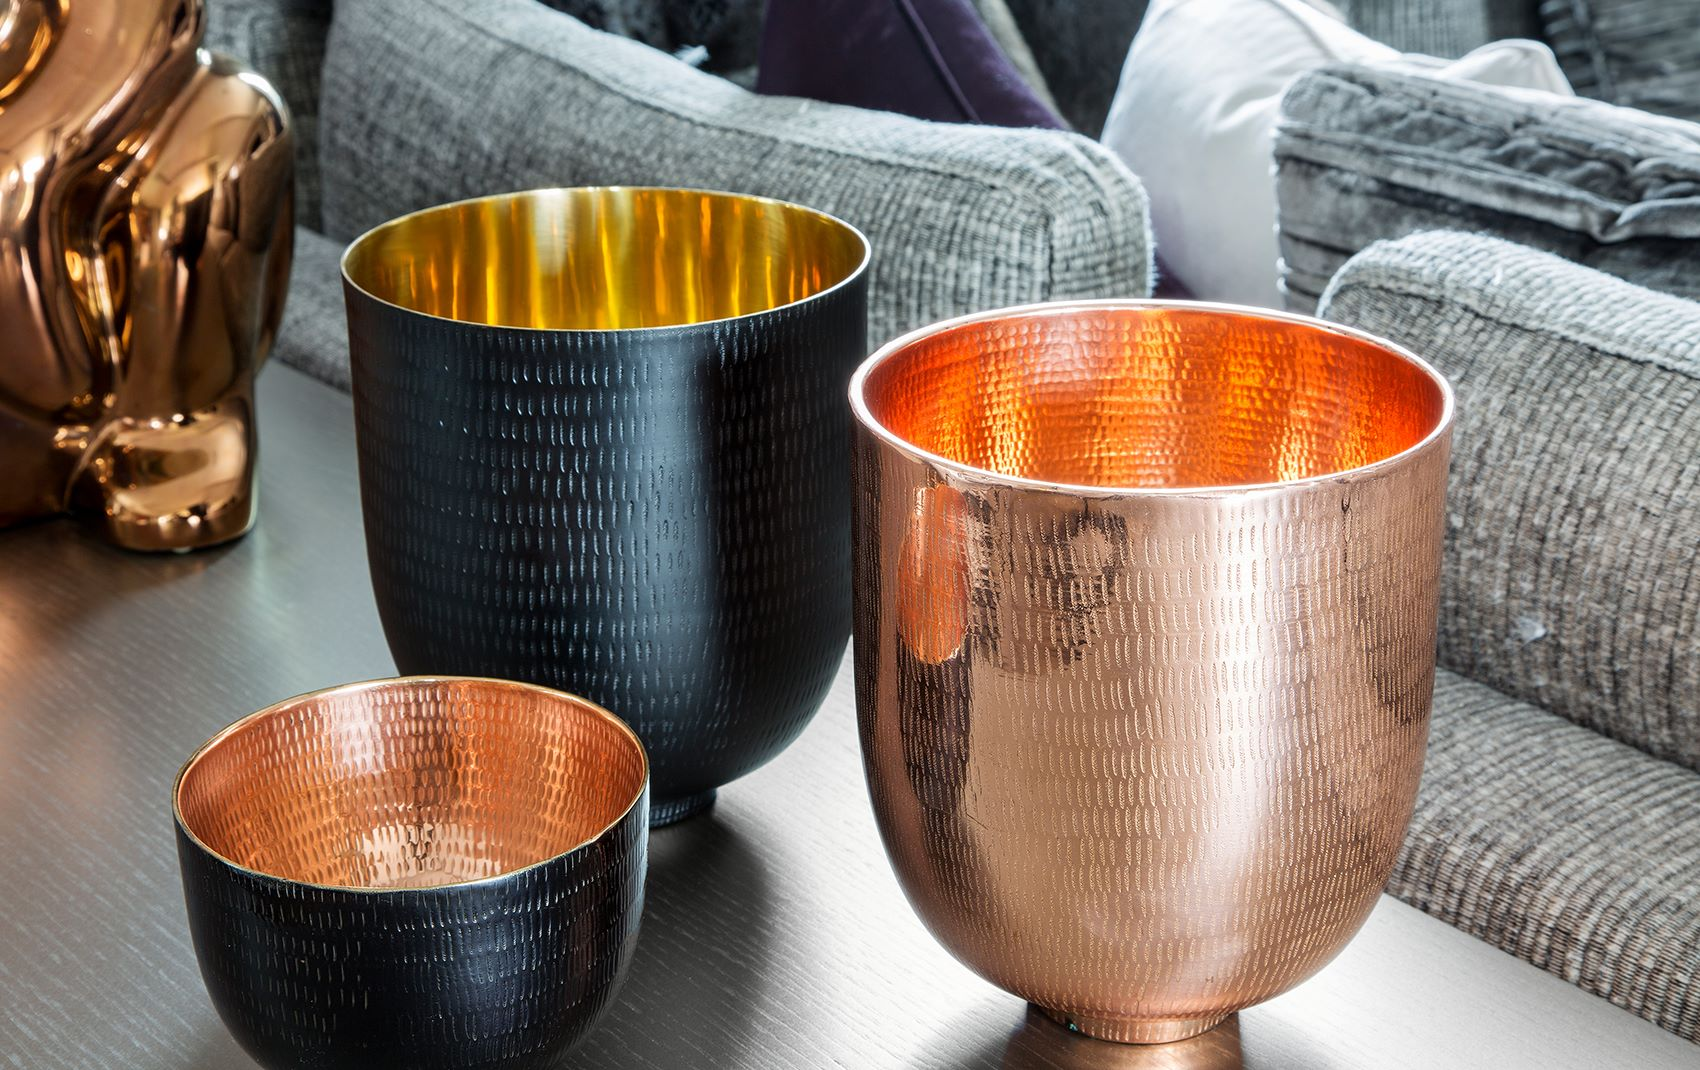 bronze brass and copper decorative goblets